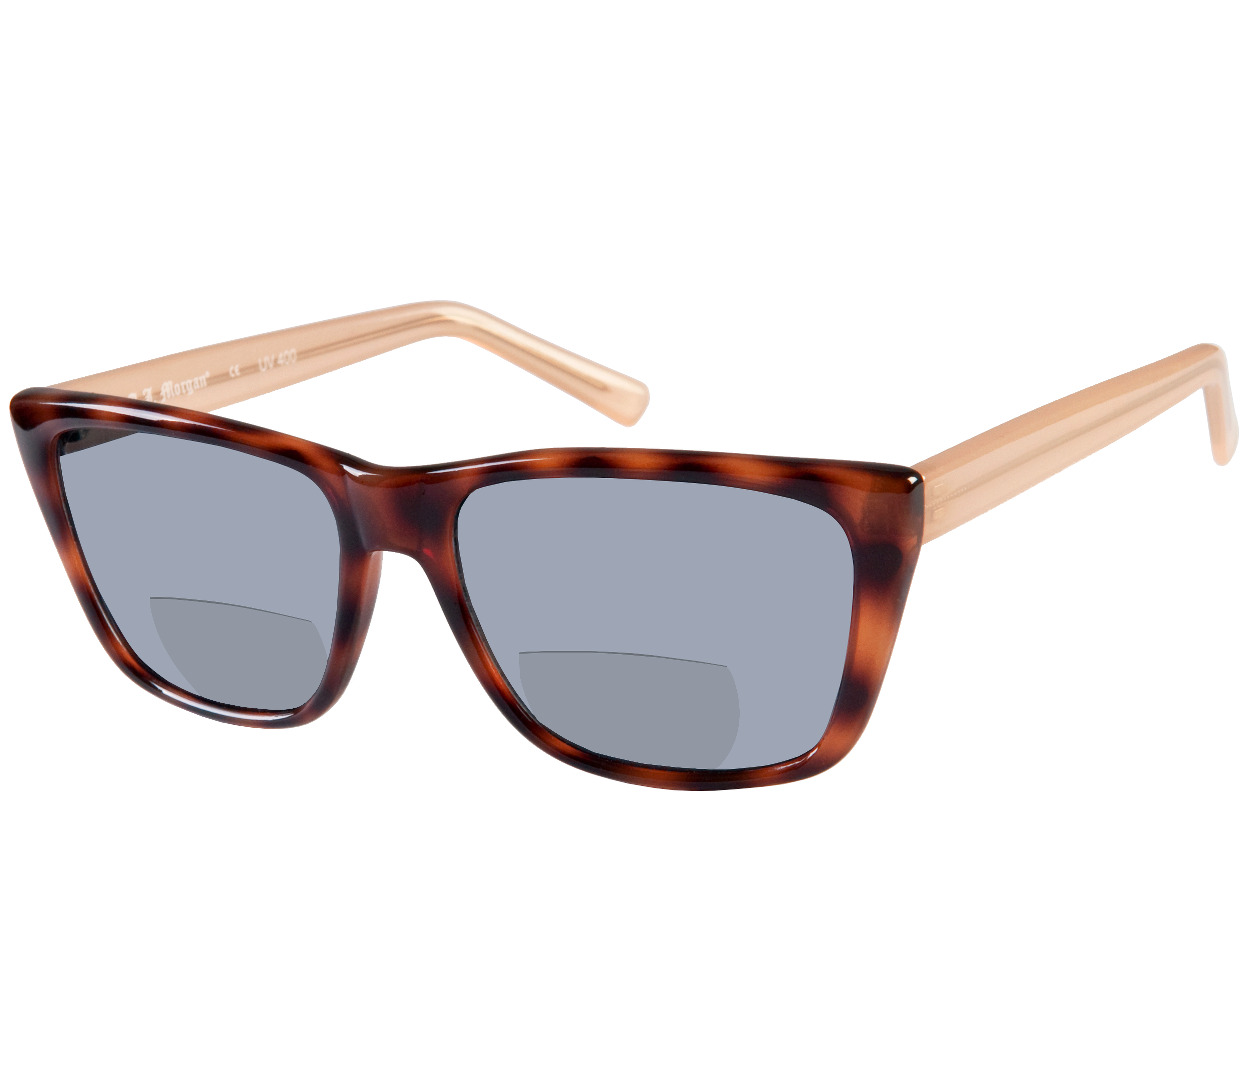 Main Image (Angle) - Regal (Tortoiseshell) Bifocal Sun Readers